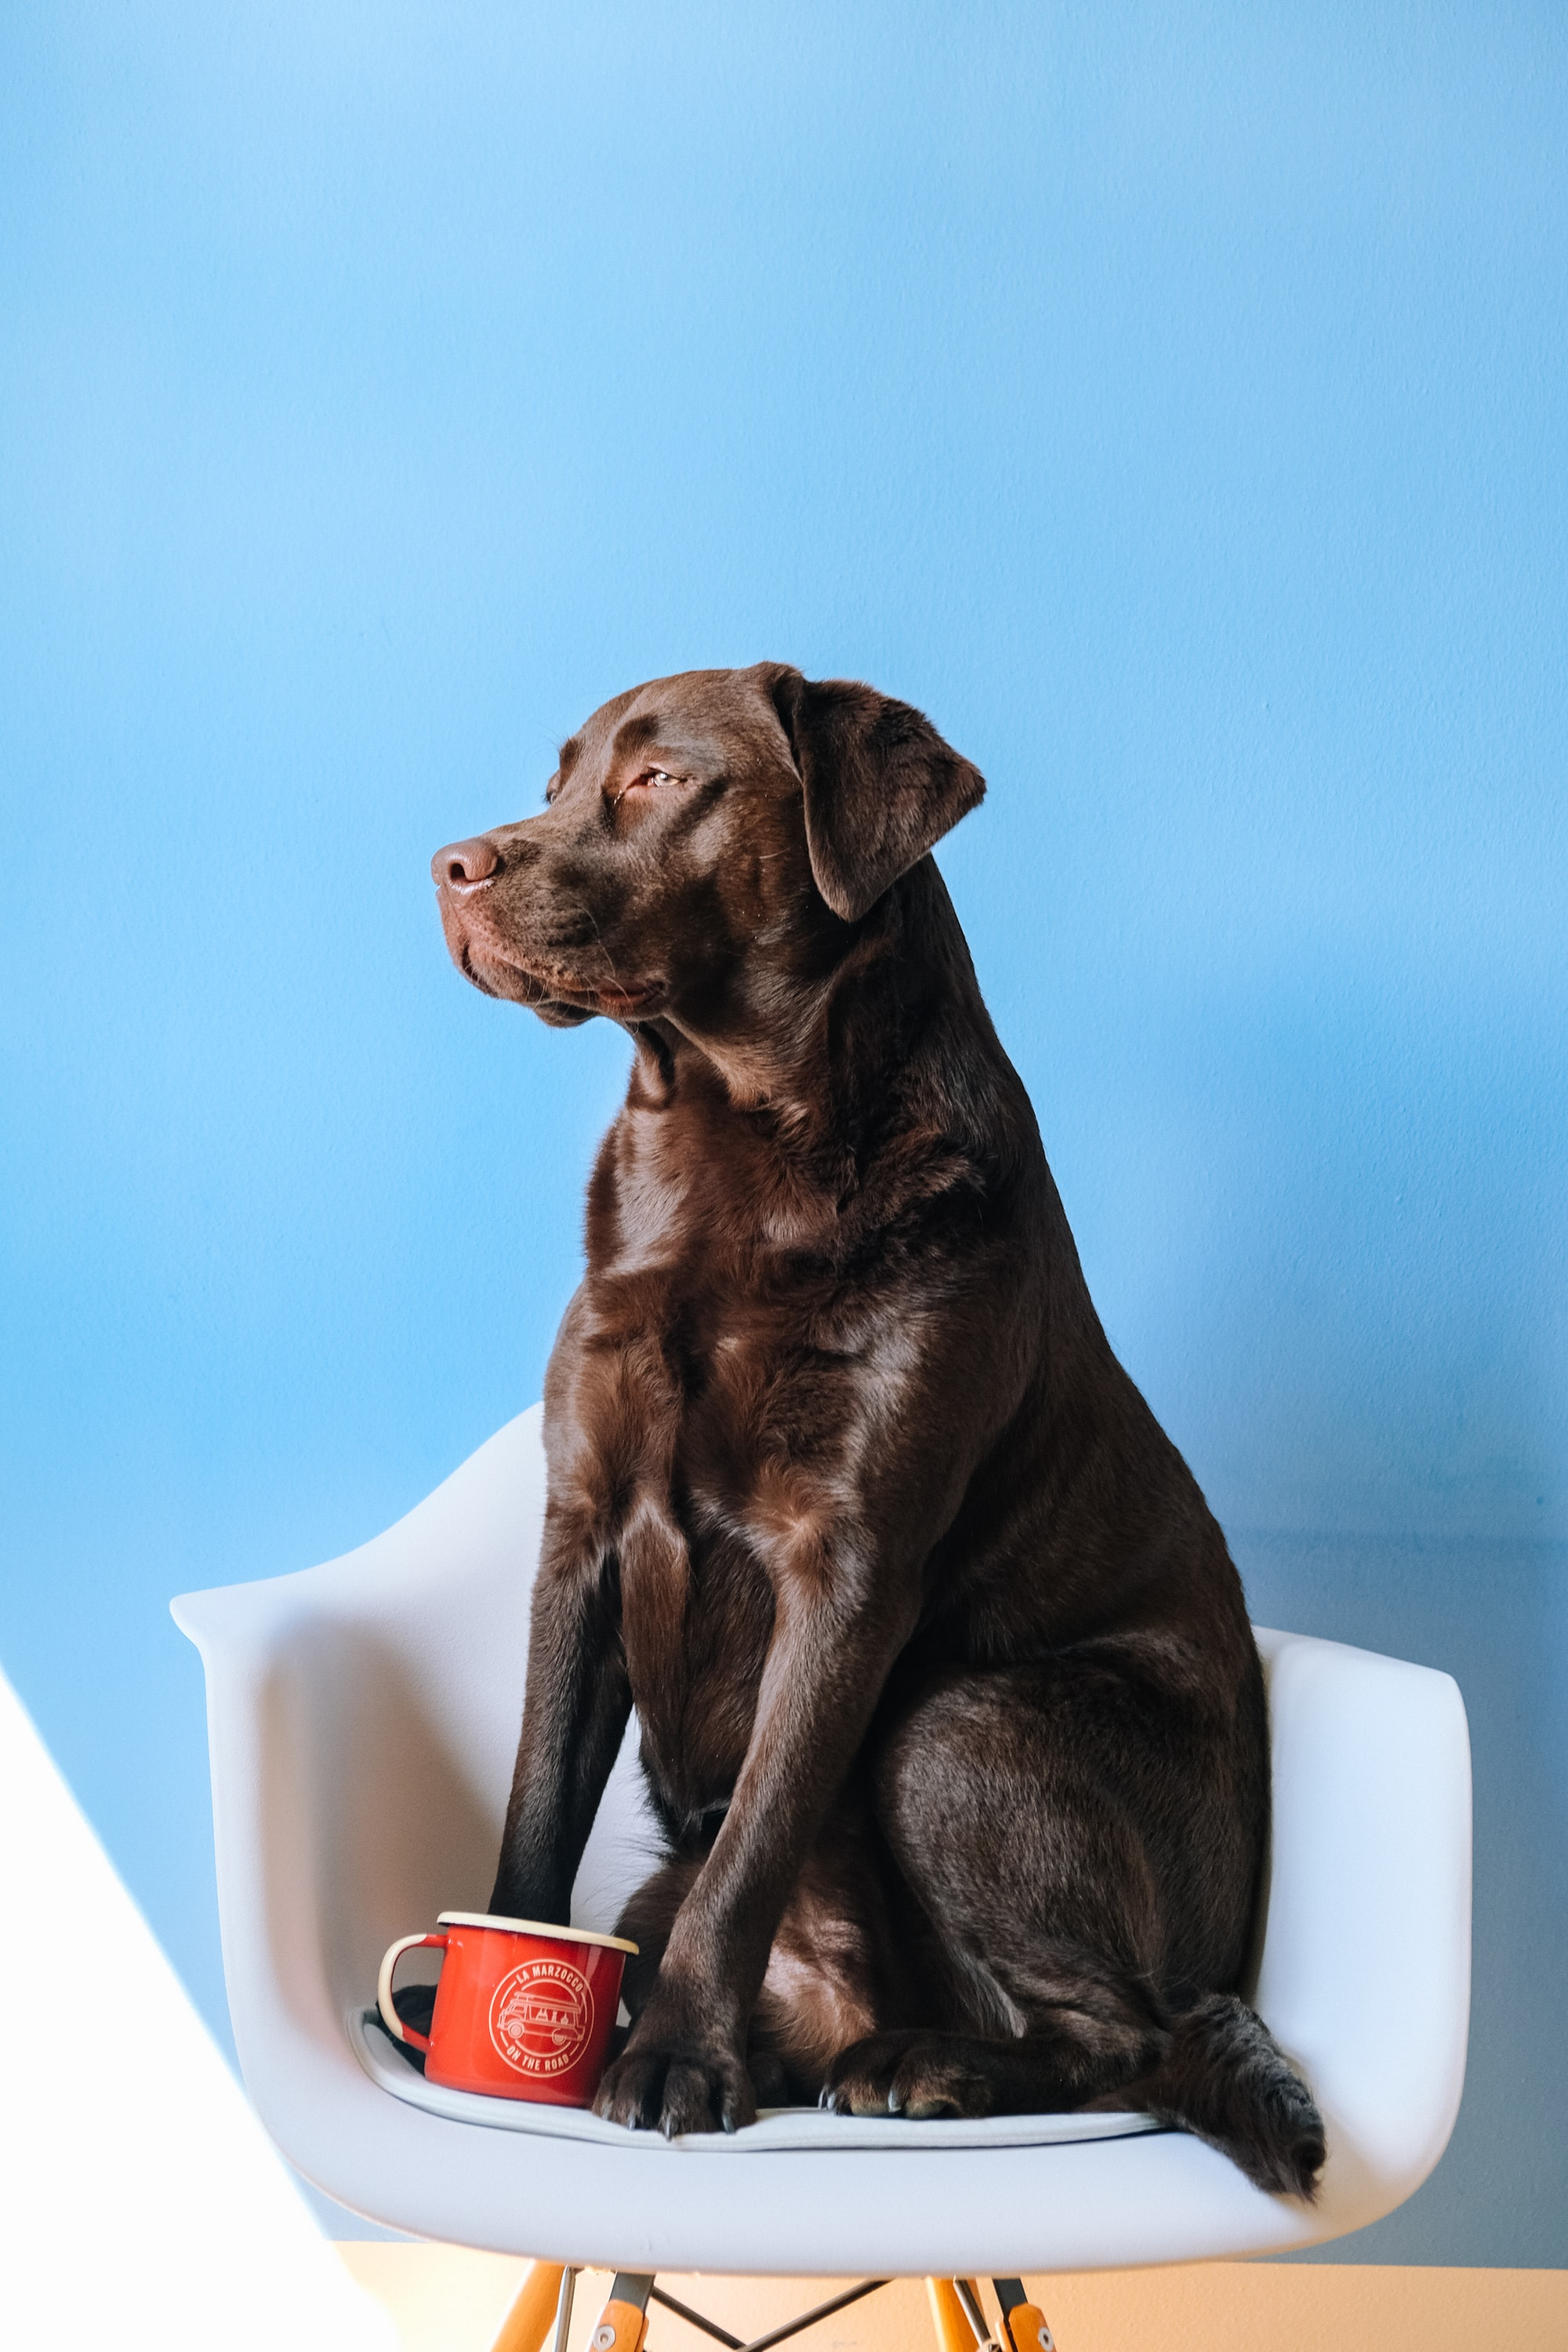 Dog, chair and cup.